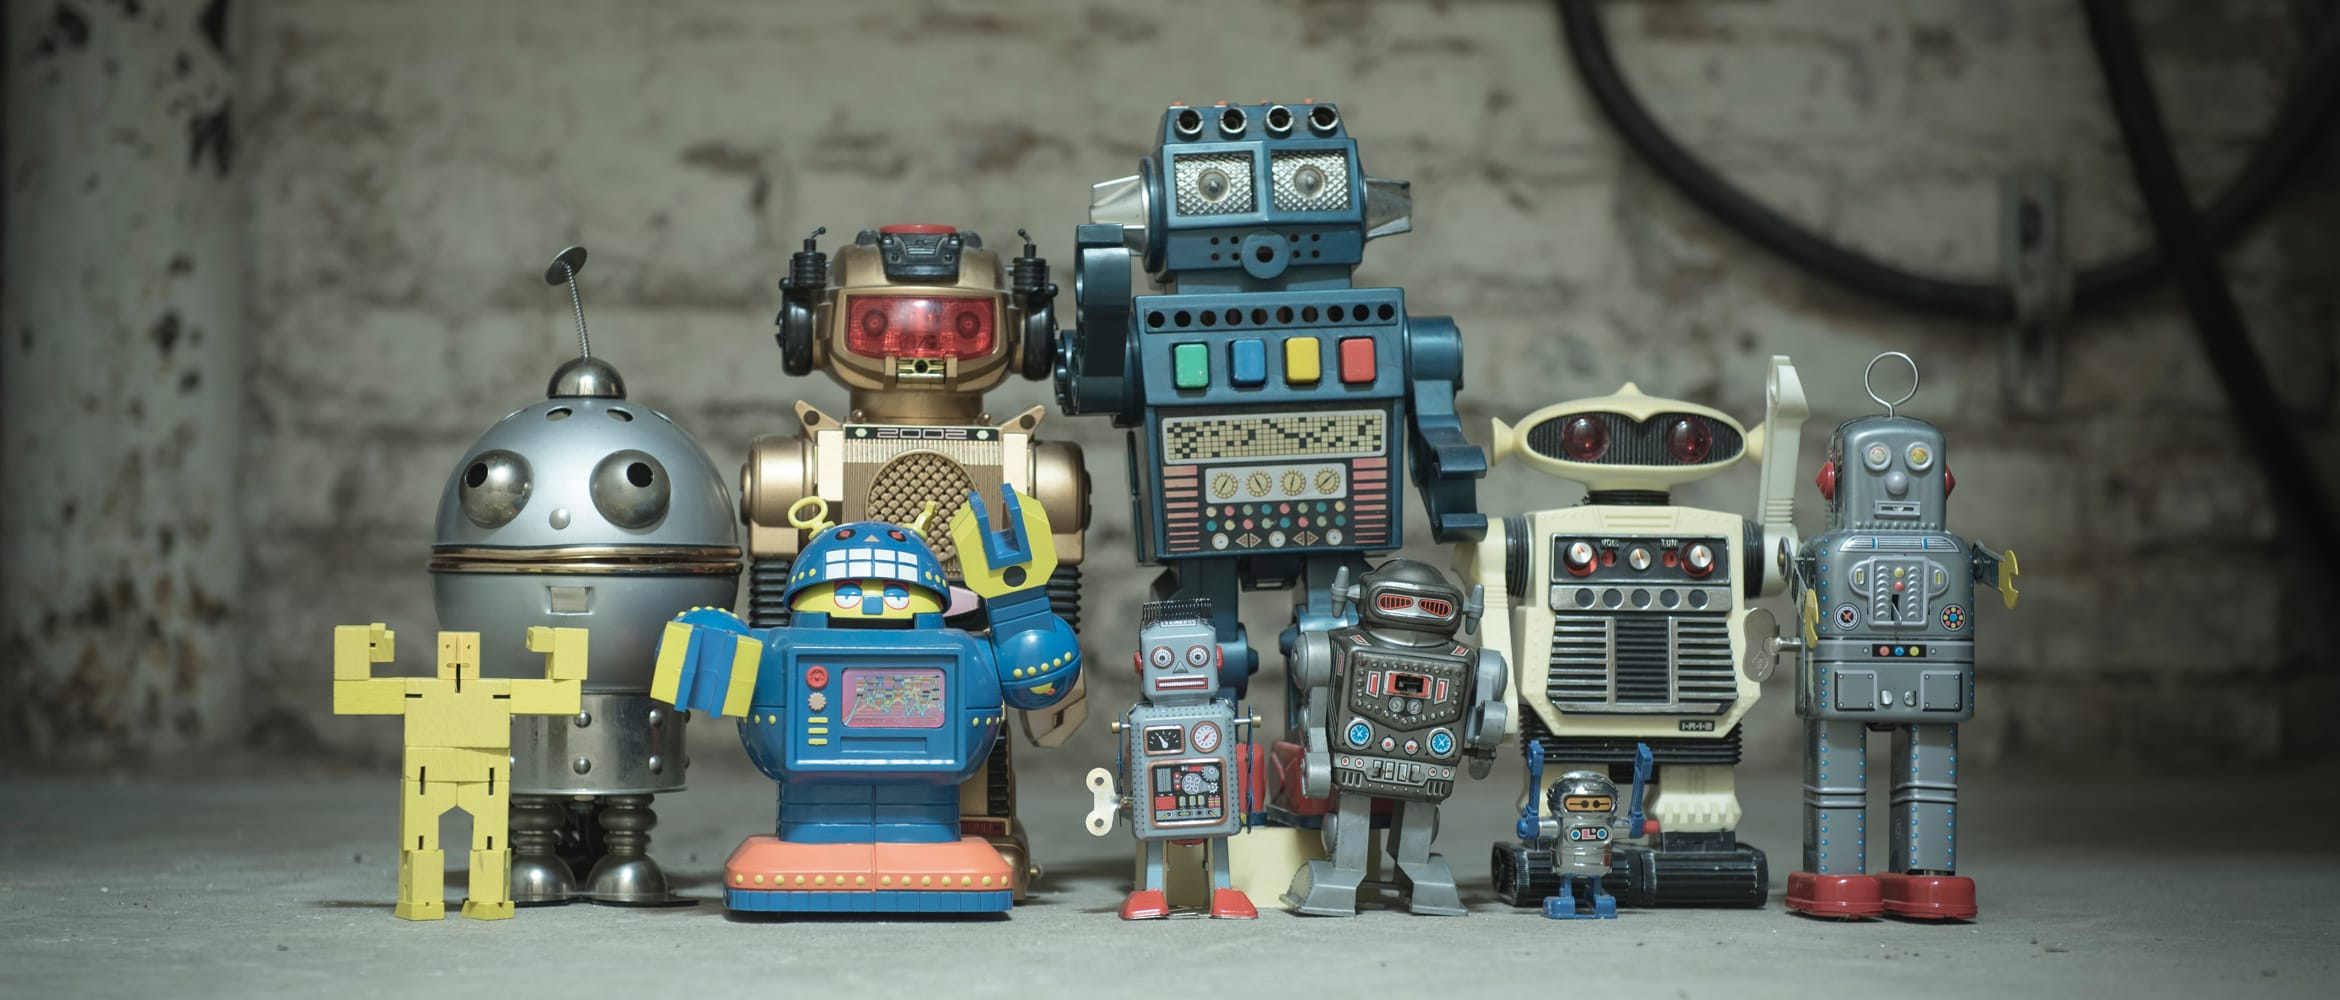 A collection of retro robots